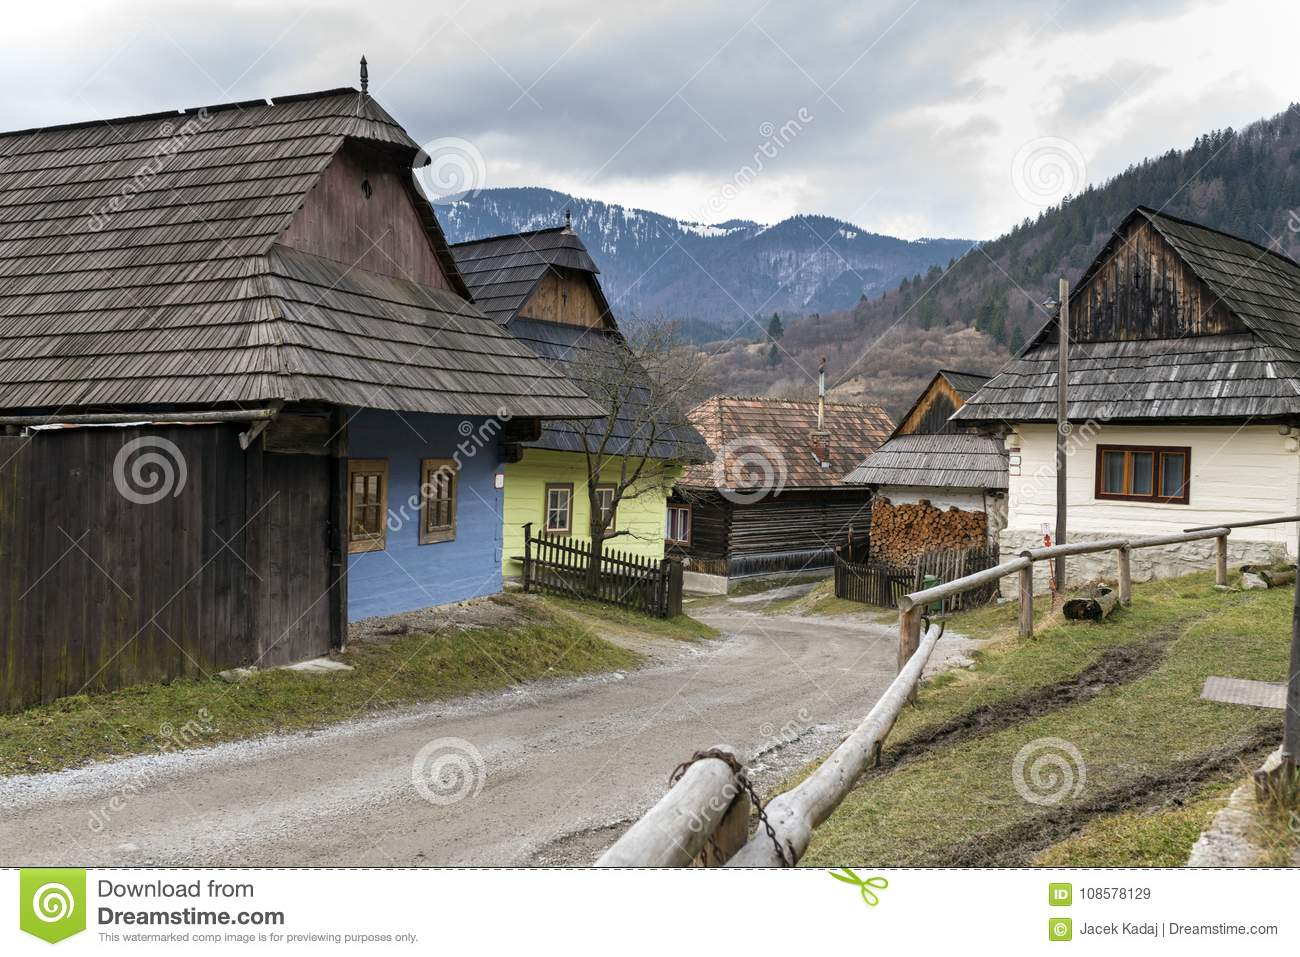 Wooden houses in Vlkolinec village, Slovak republic